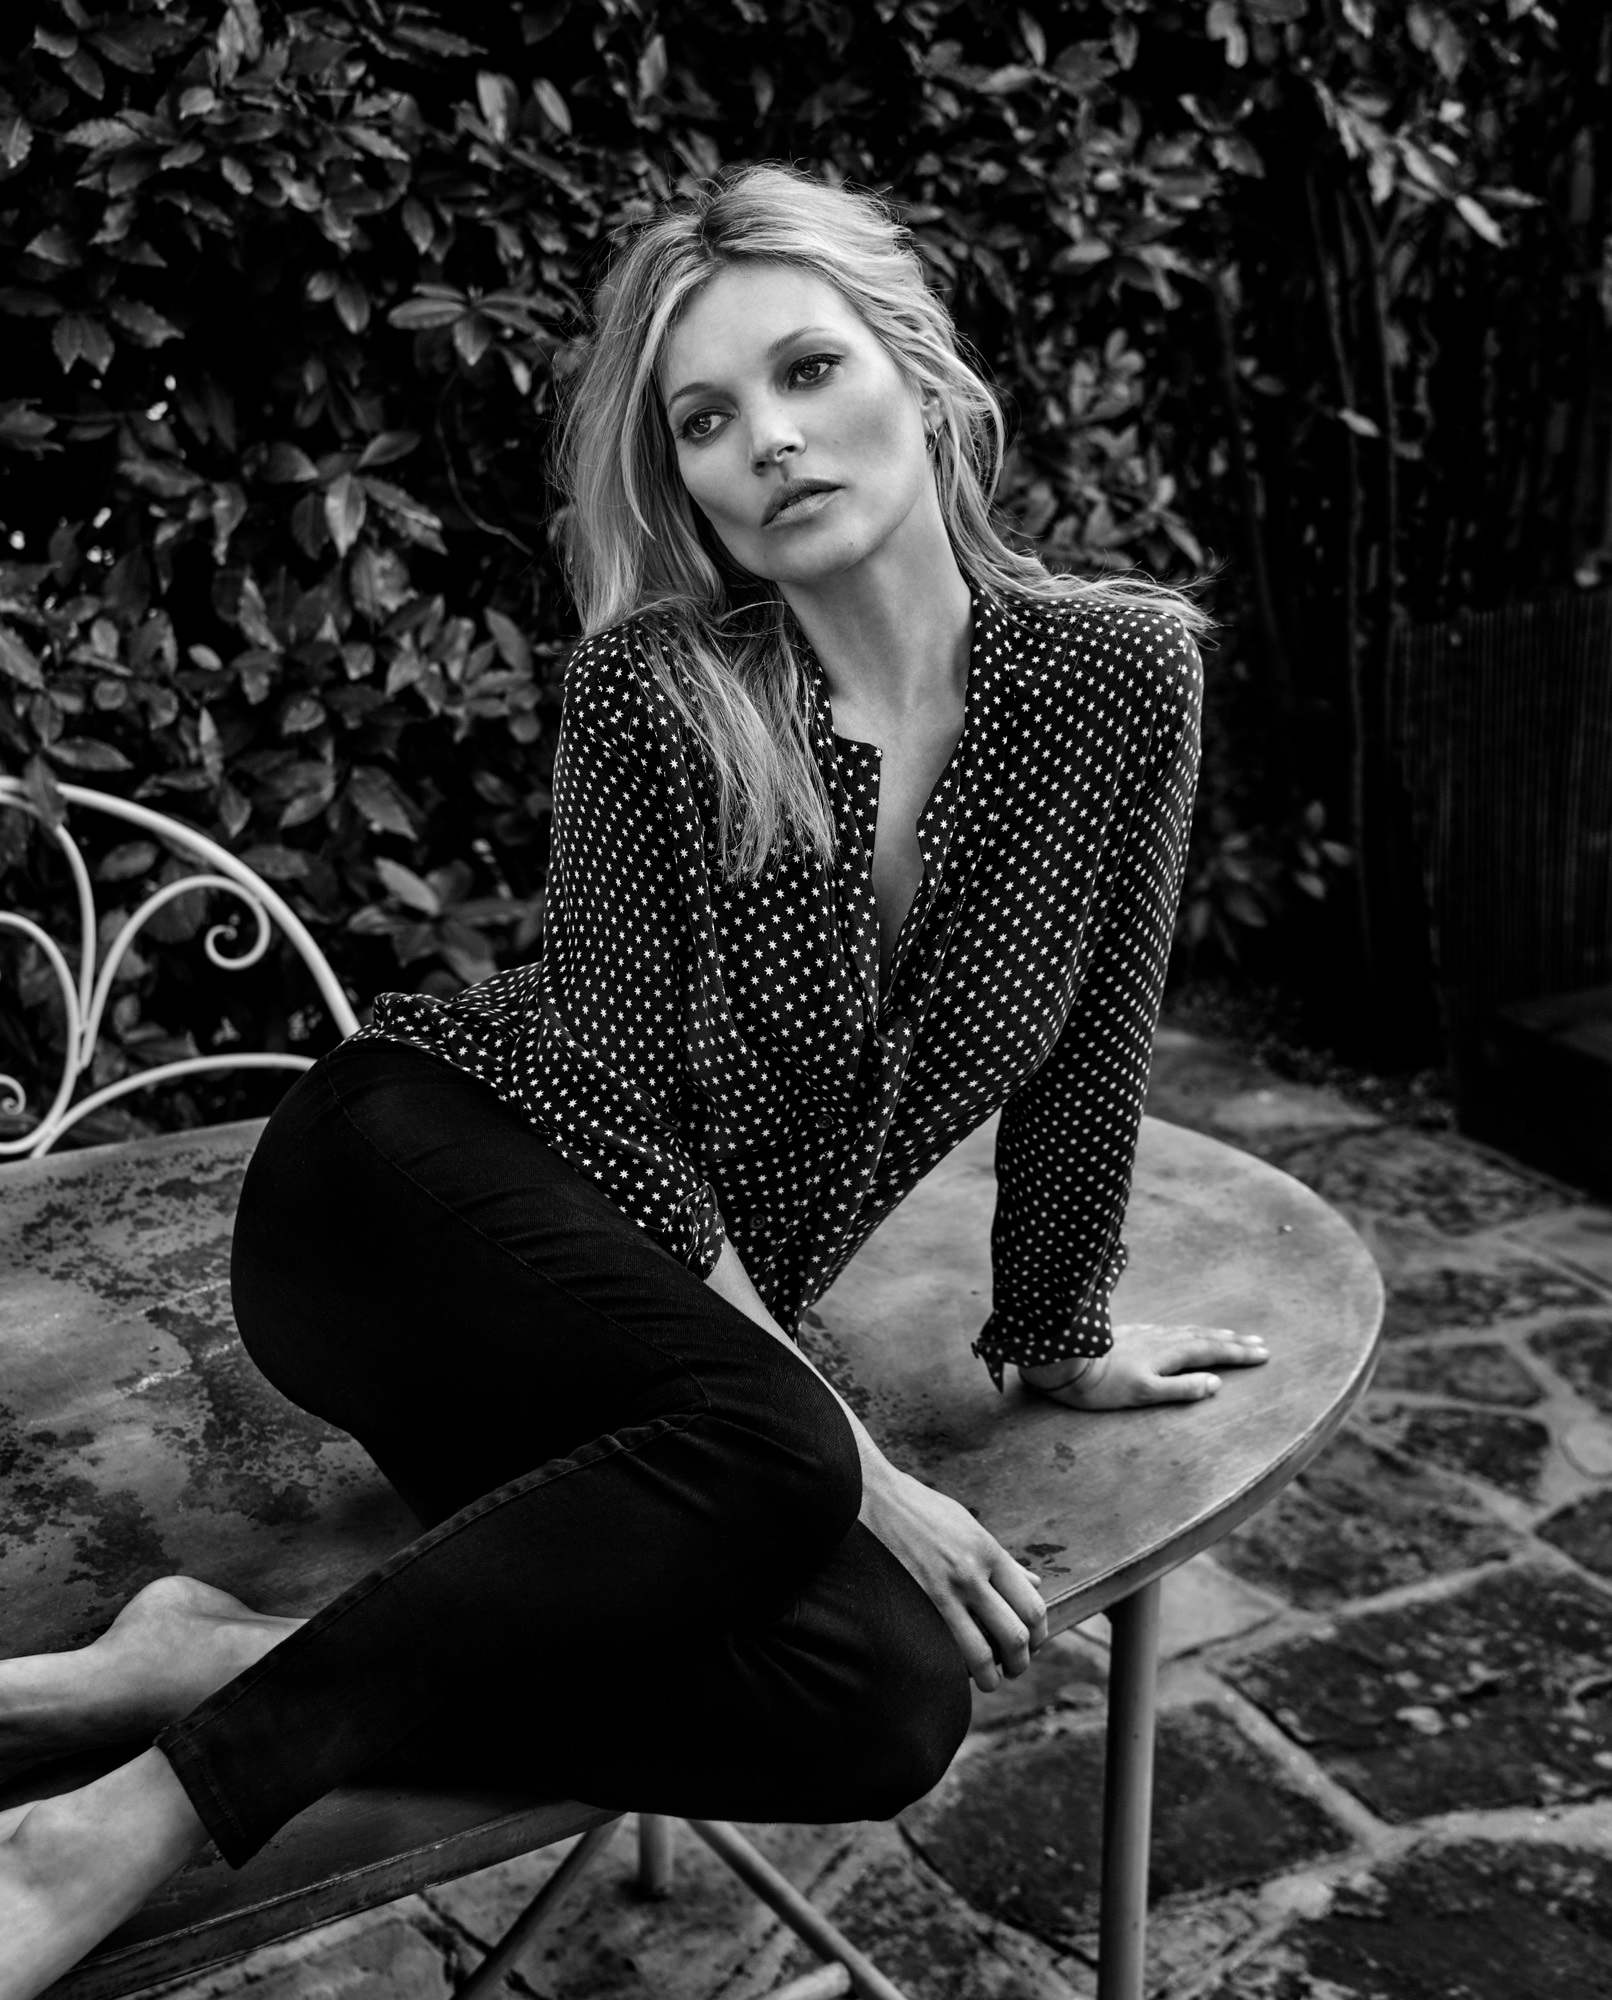 kate-moss-by-chris-colls-for-the-edit-june-2016-7.jpg